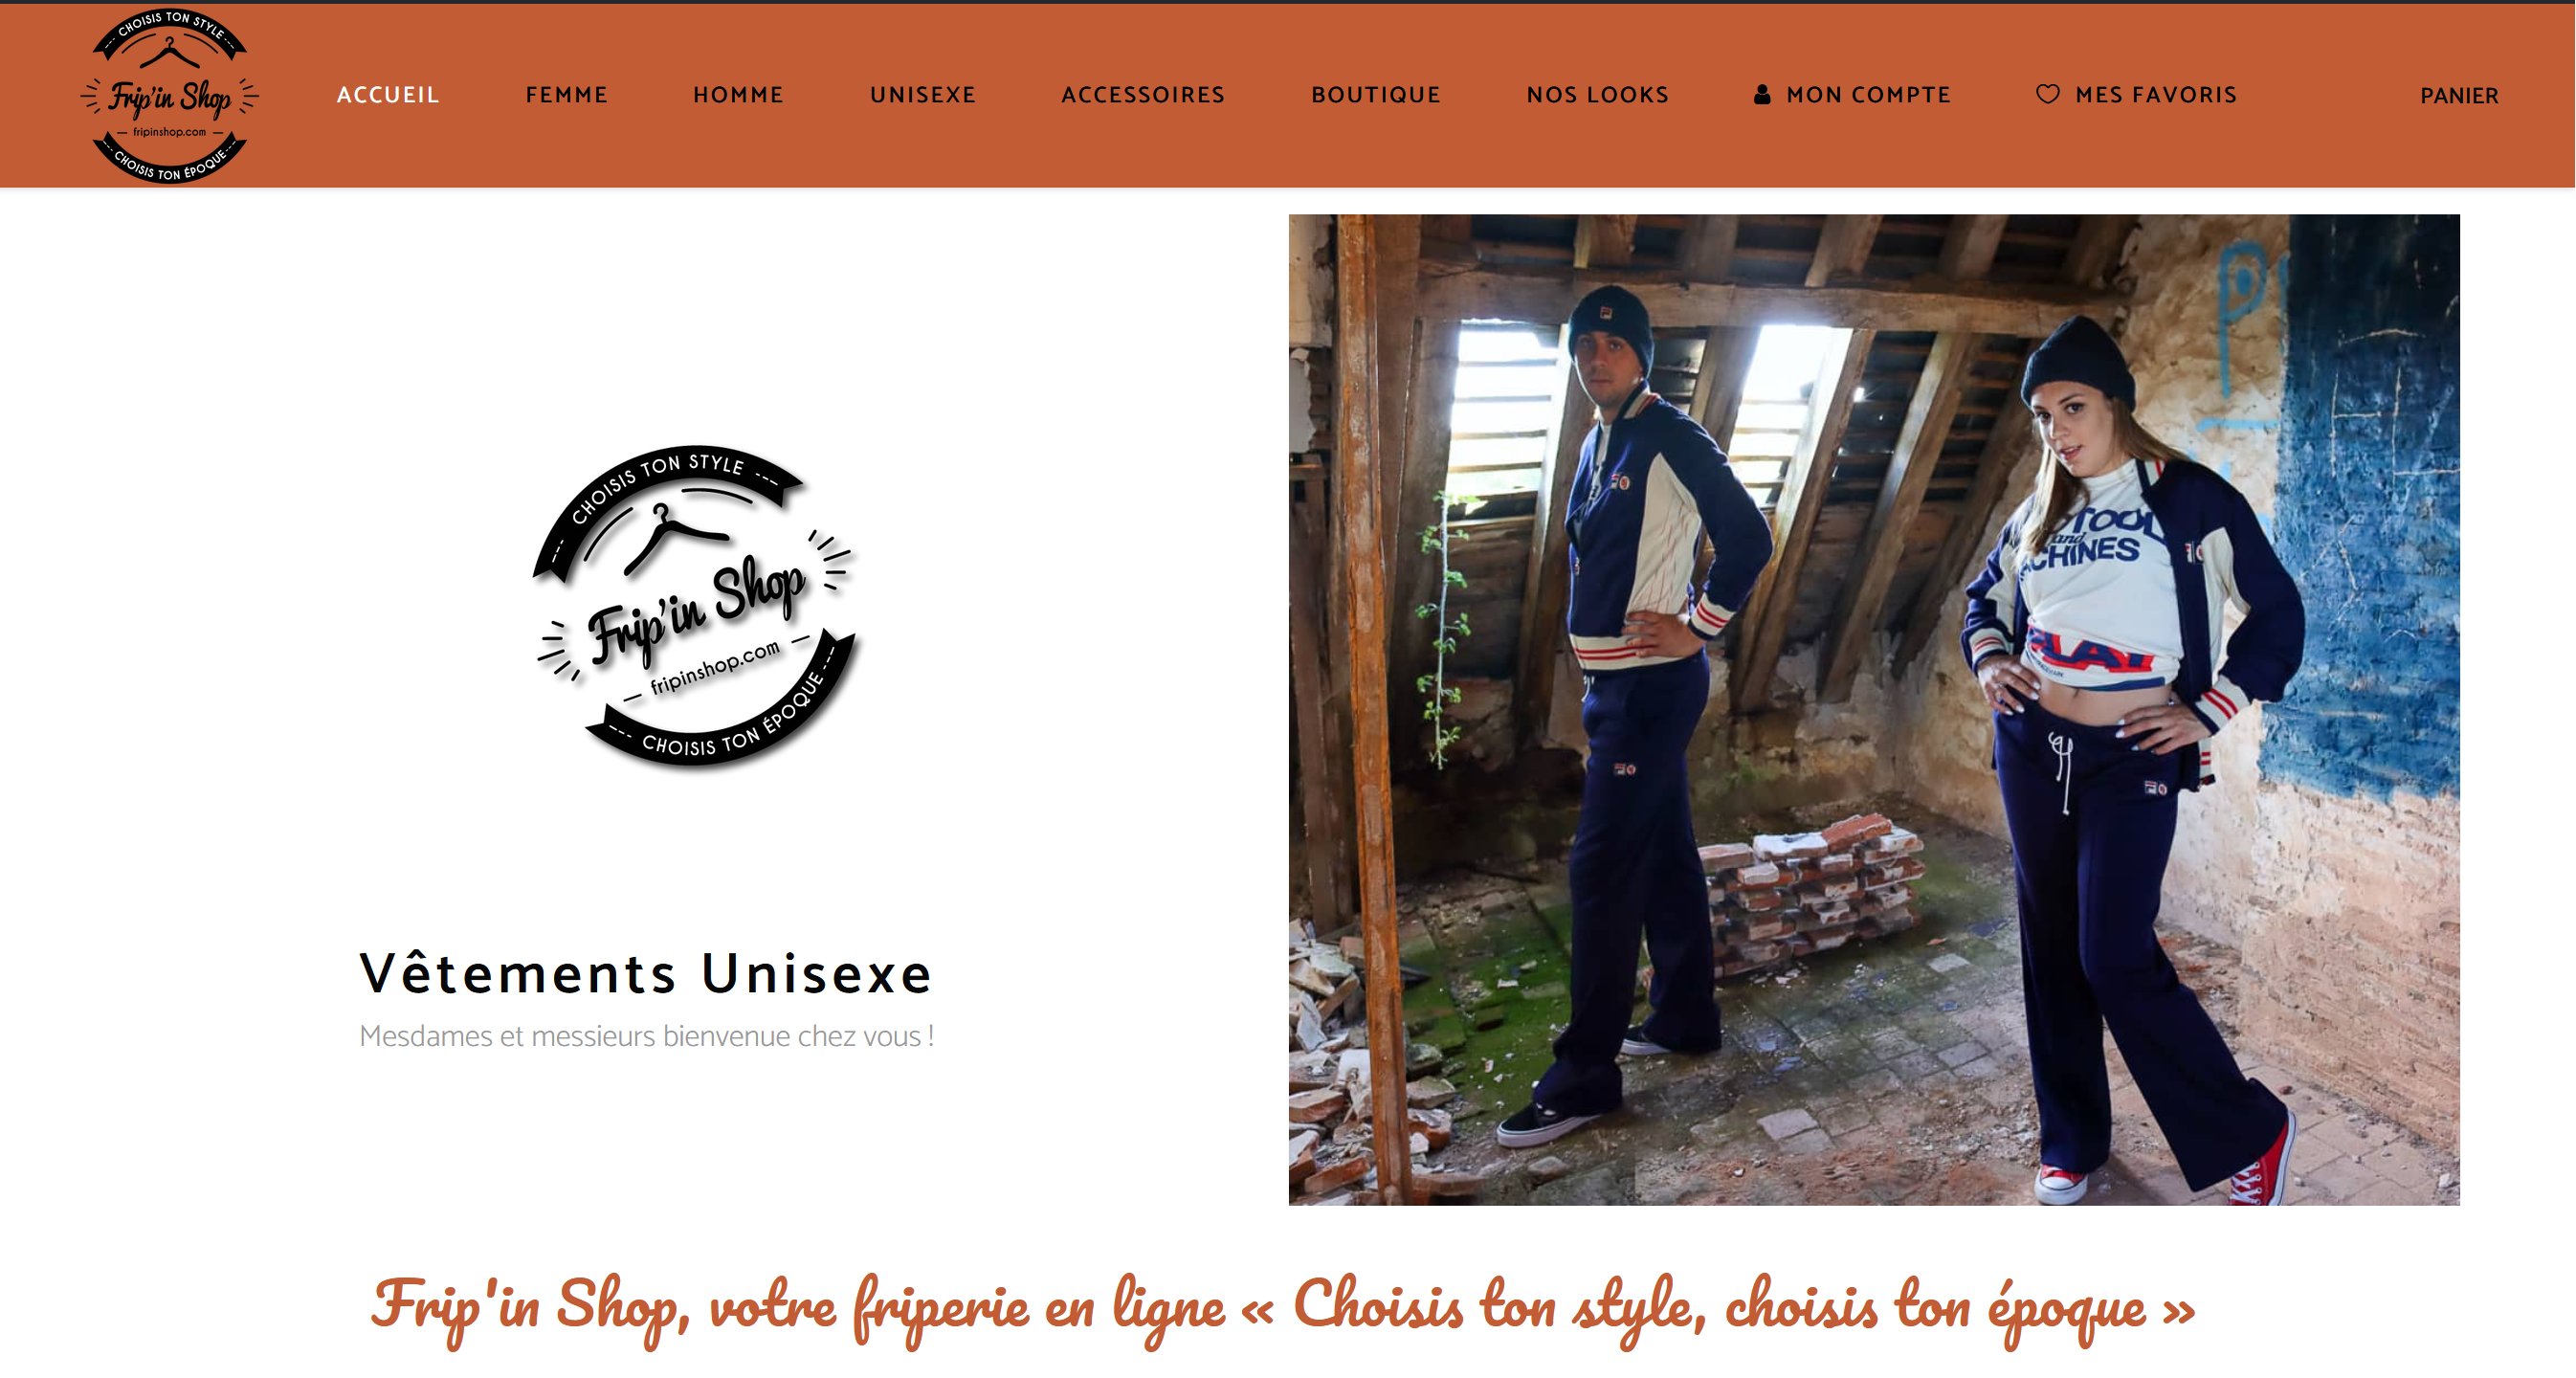 concept-web-design-creation-woocommerce-frip-in-shop-categorie-vetements-unisexe